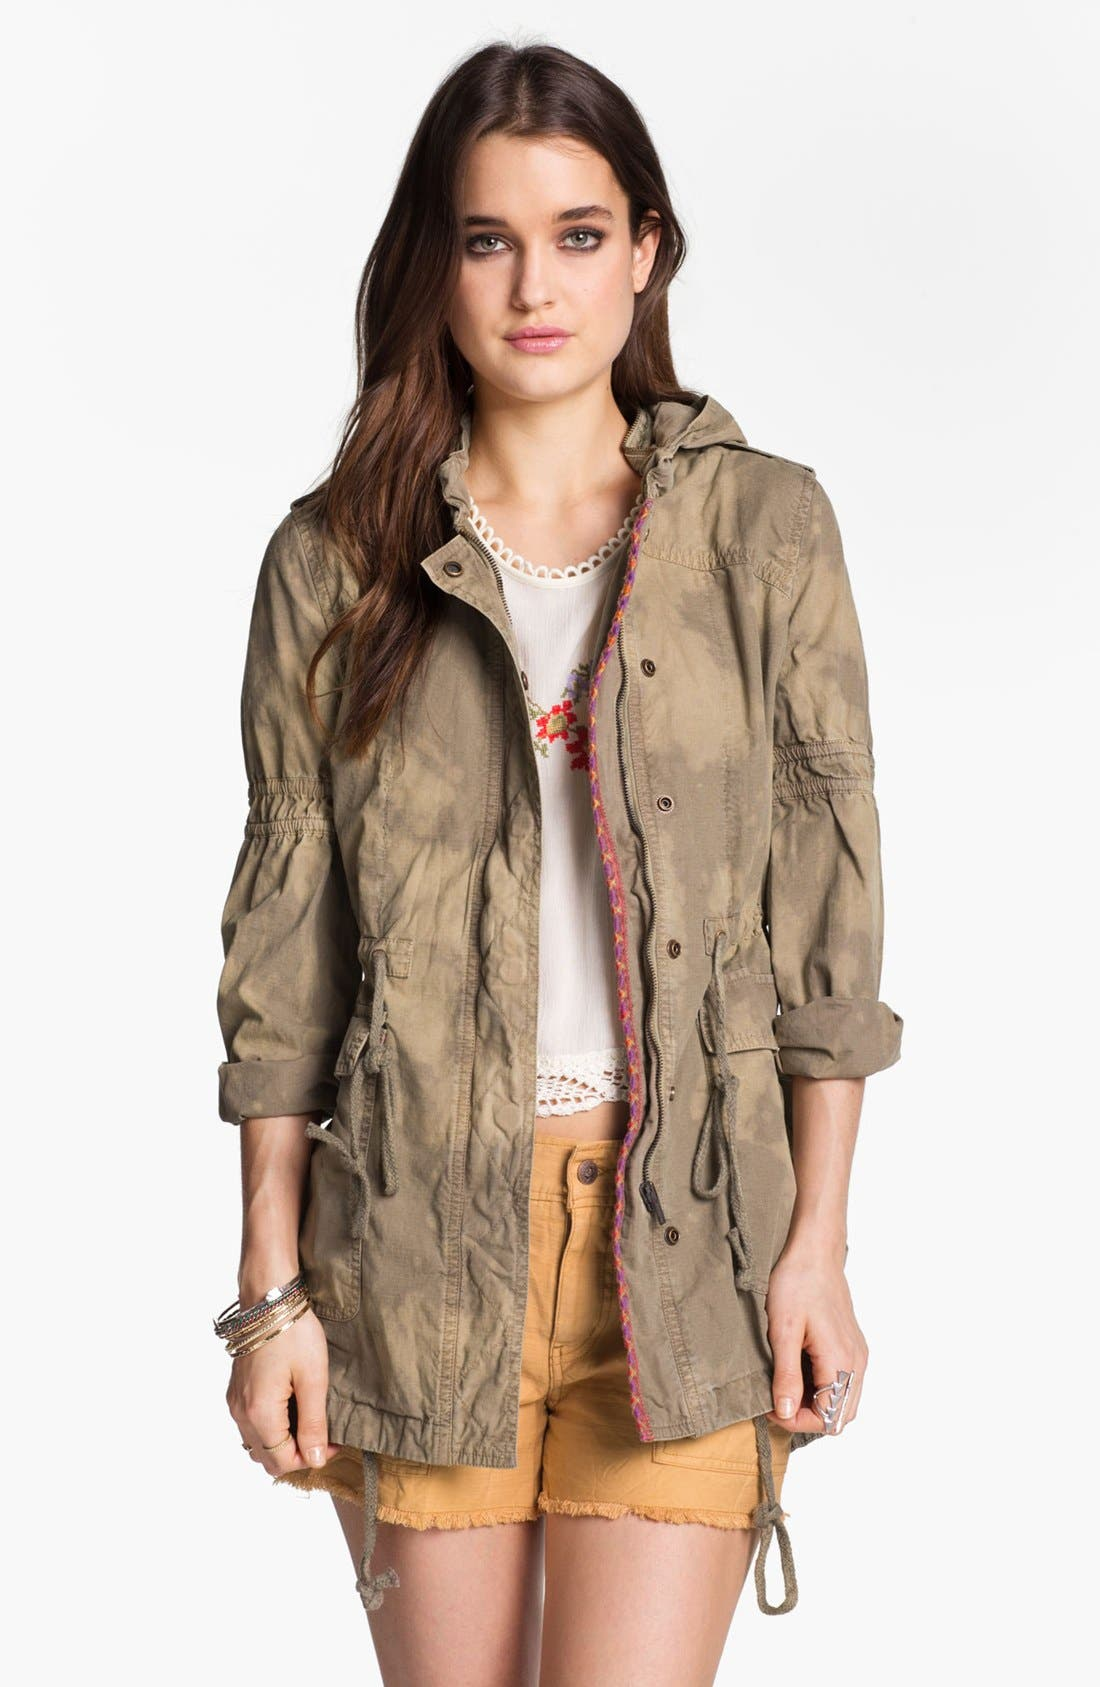 Alternate Image 1 Selected - Free People 'Festival' Embroidered Tie Dye Anorak